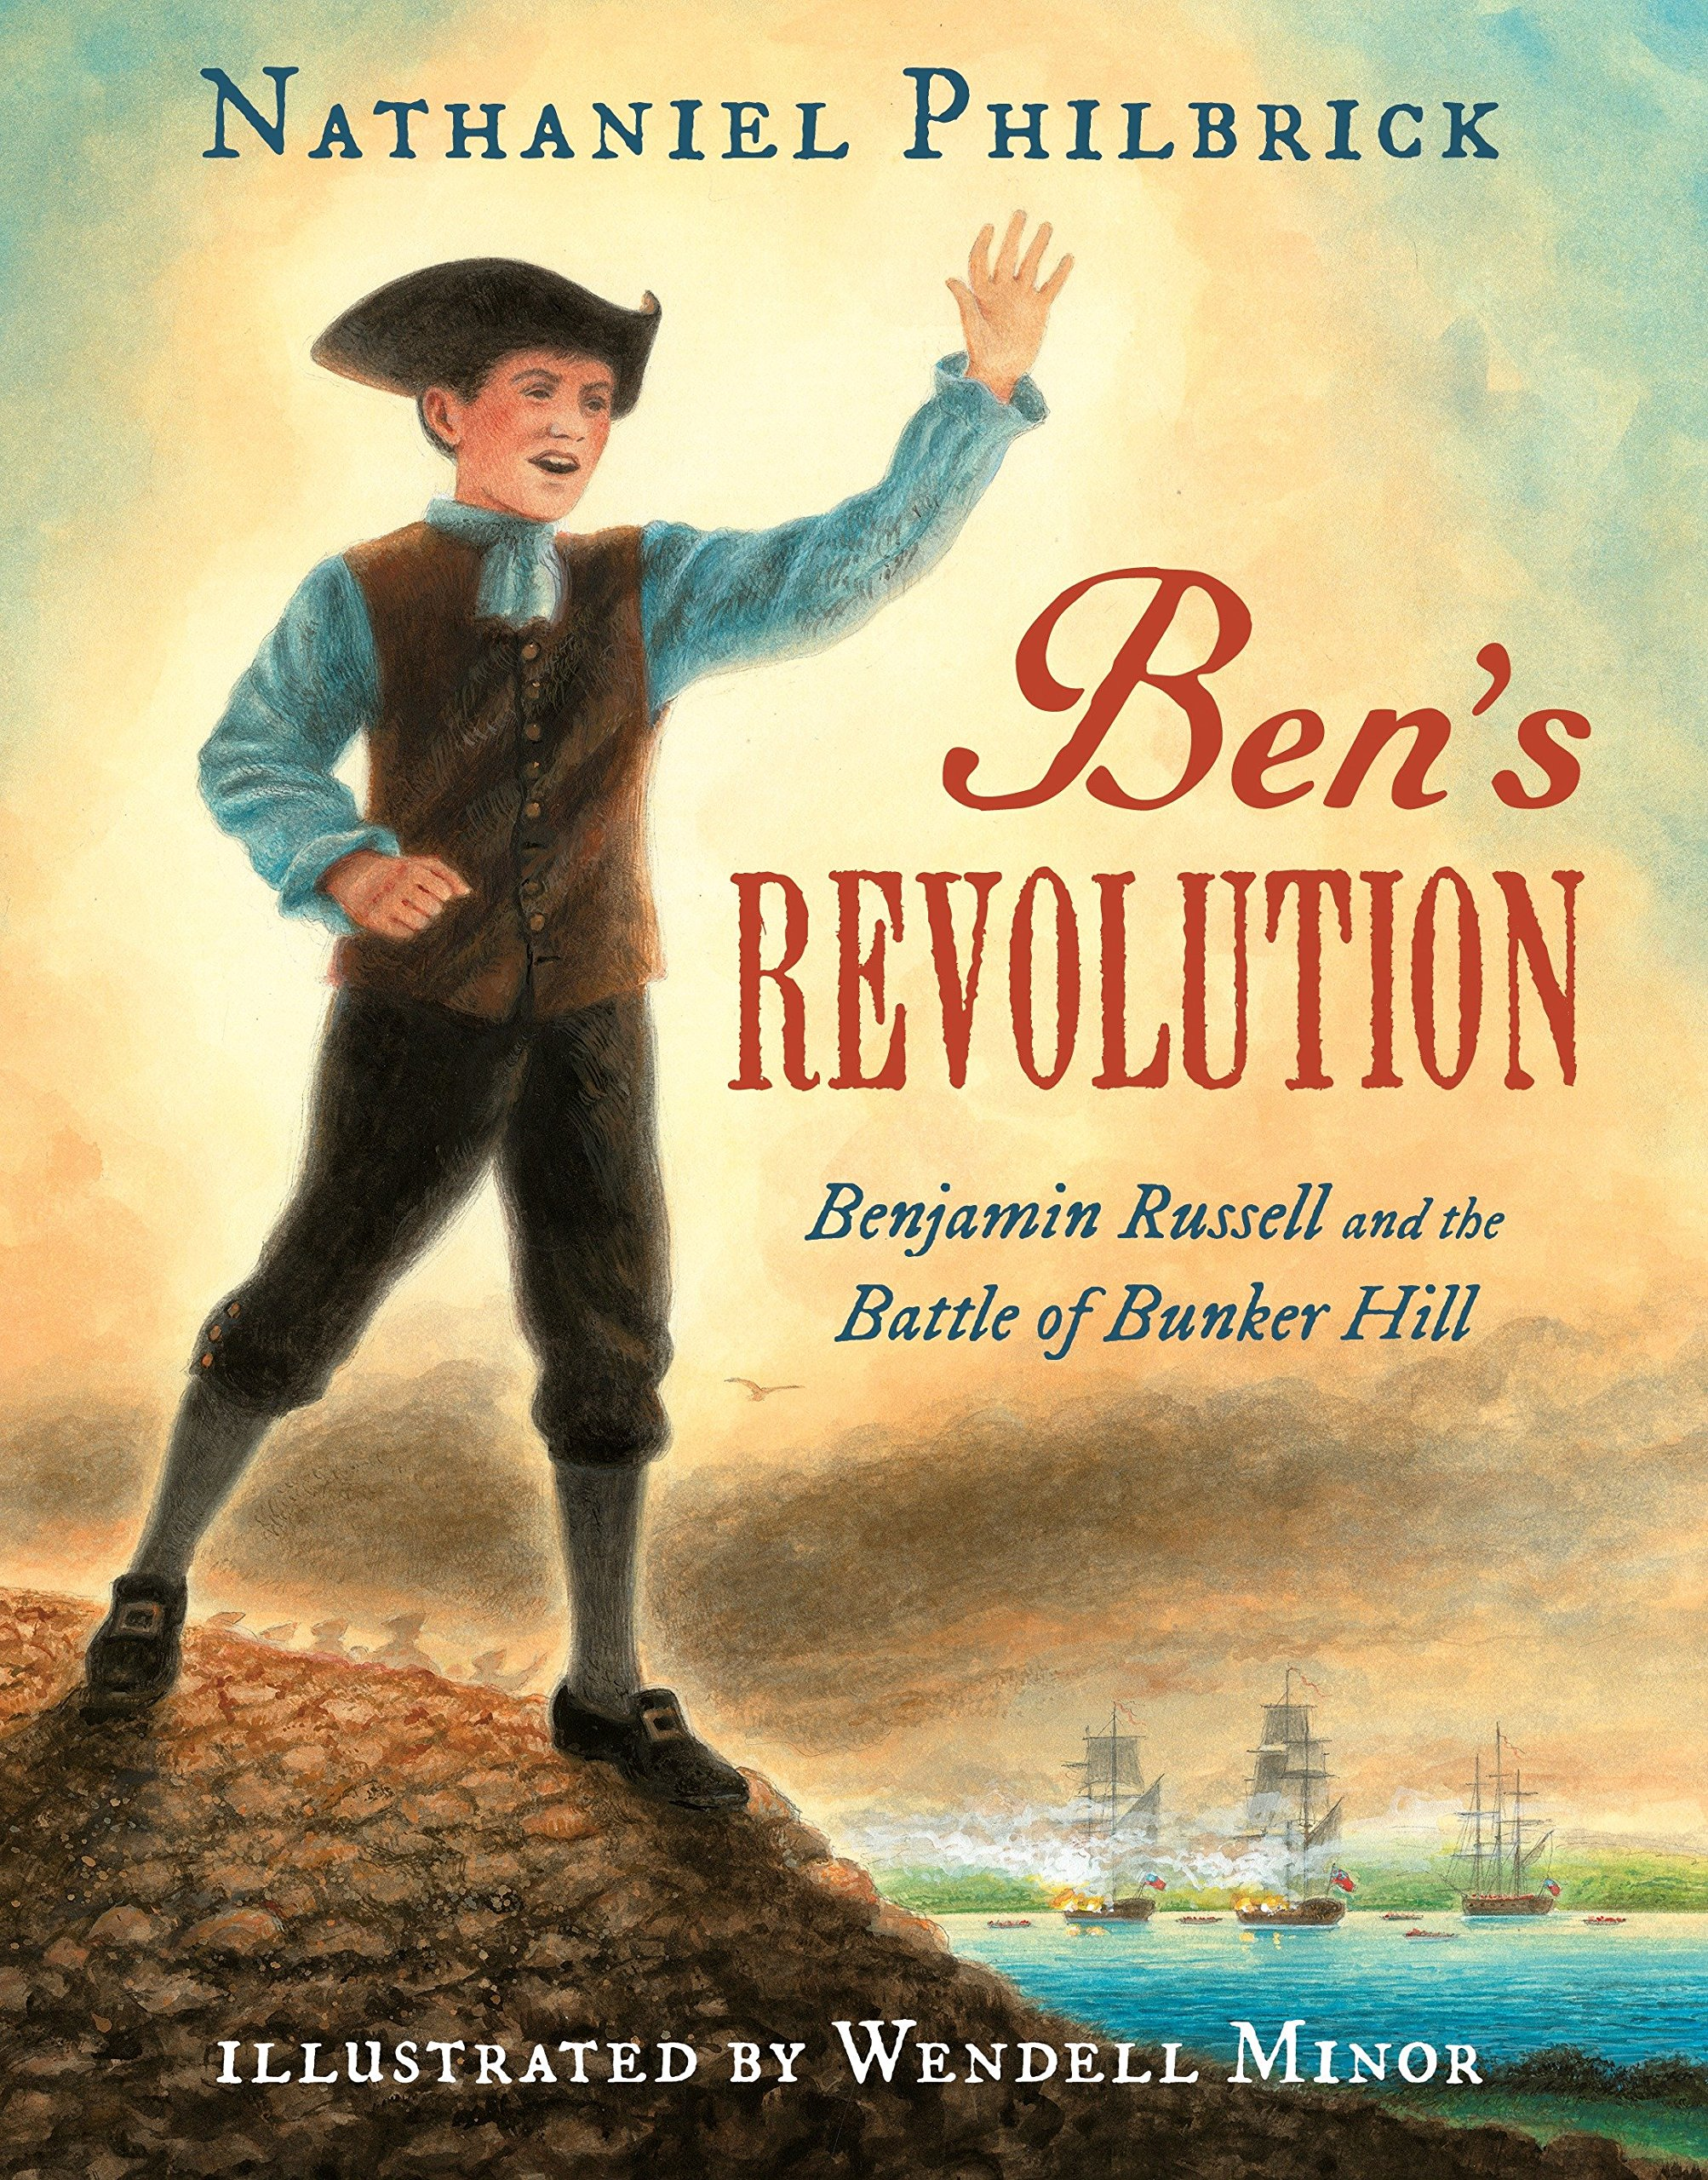 events leading up to the battle of bunker hill